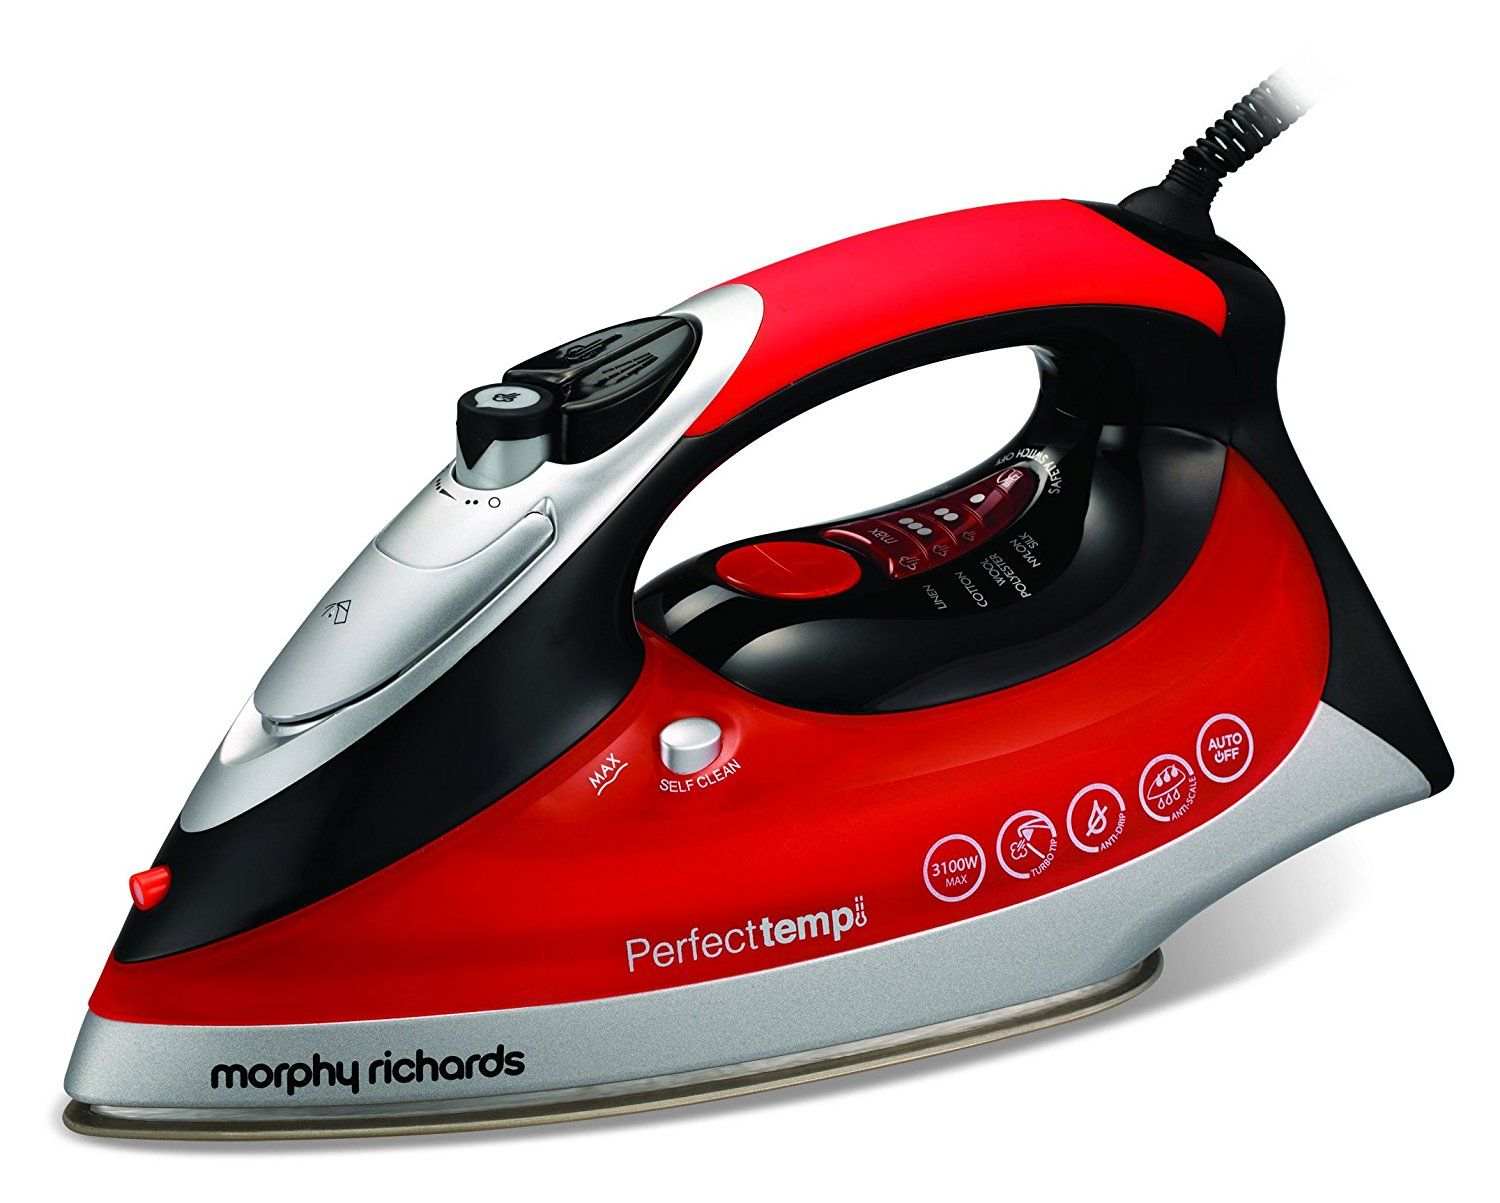 Cleaning rowenta pressure iron and steamer - Morphy Richards 300002 Perfect Temp Steam Iron Review Https Royalirons Co